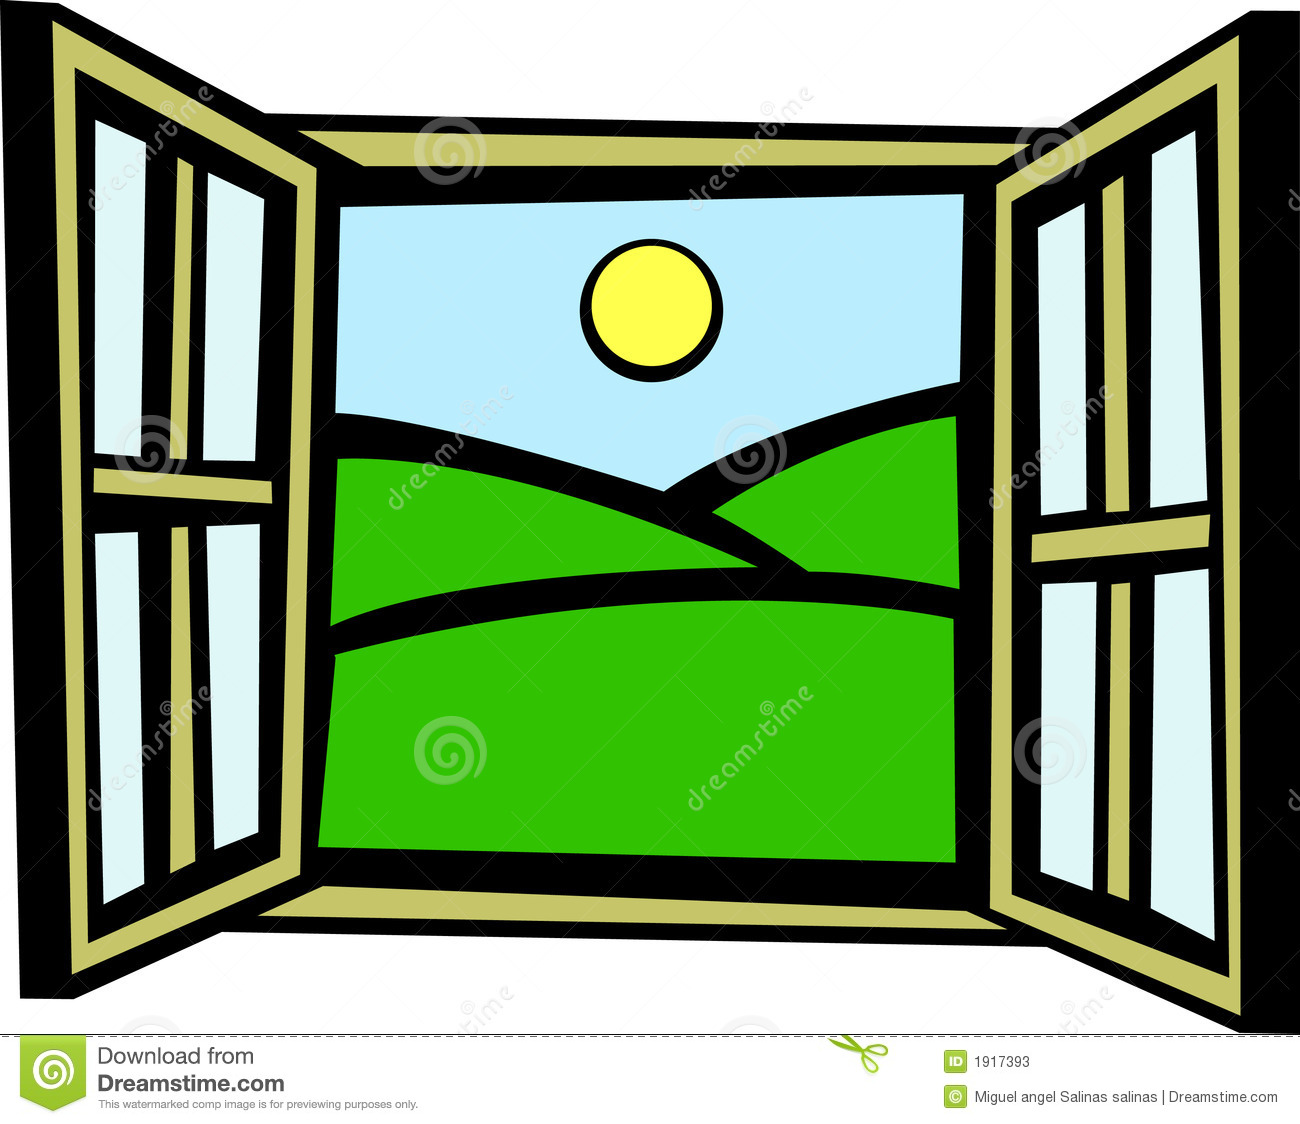 outside window clipart clipart panda free clipart images rh clipartpanda com window clipart free window clipart black and white